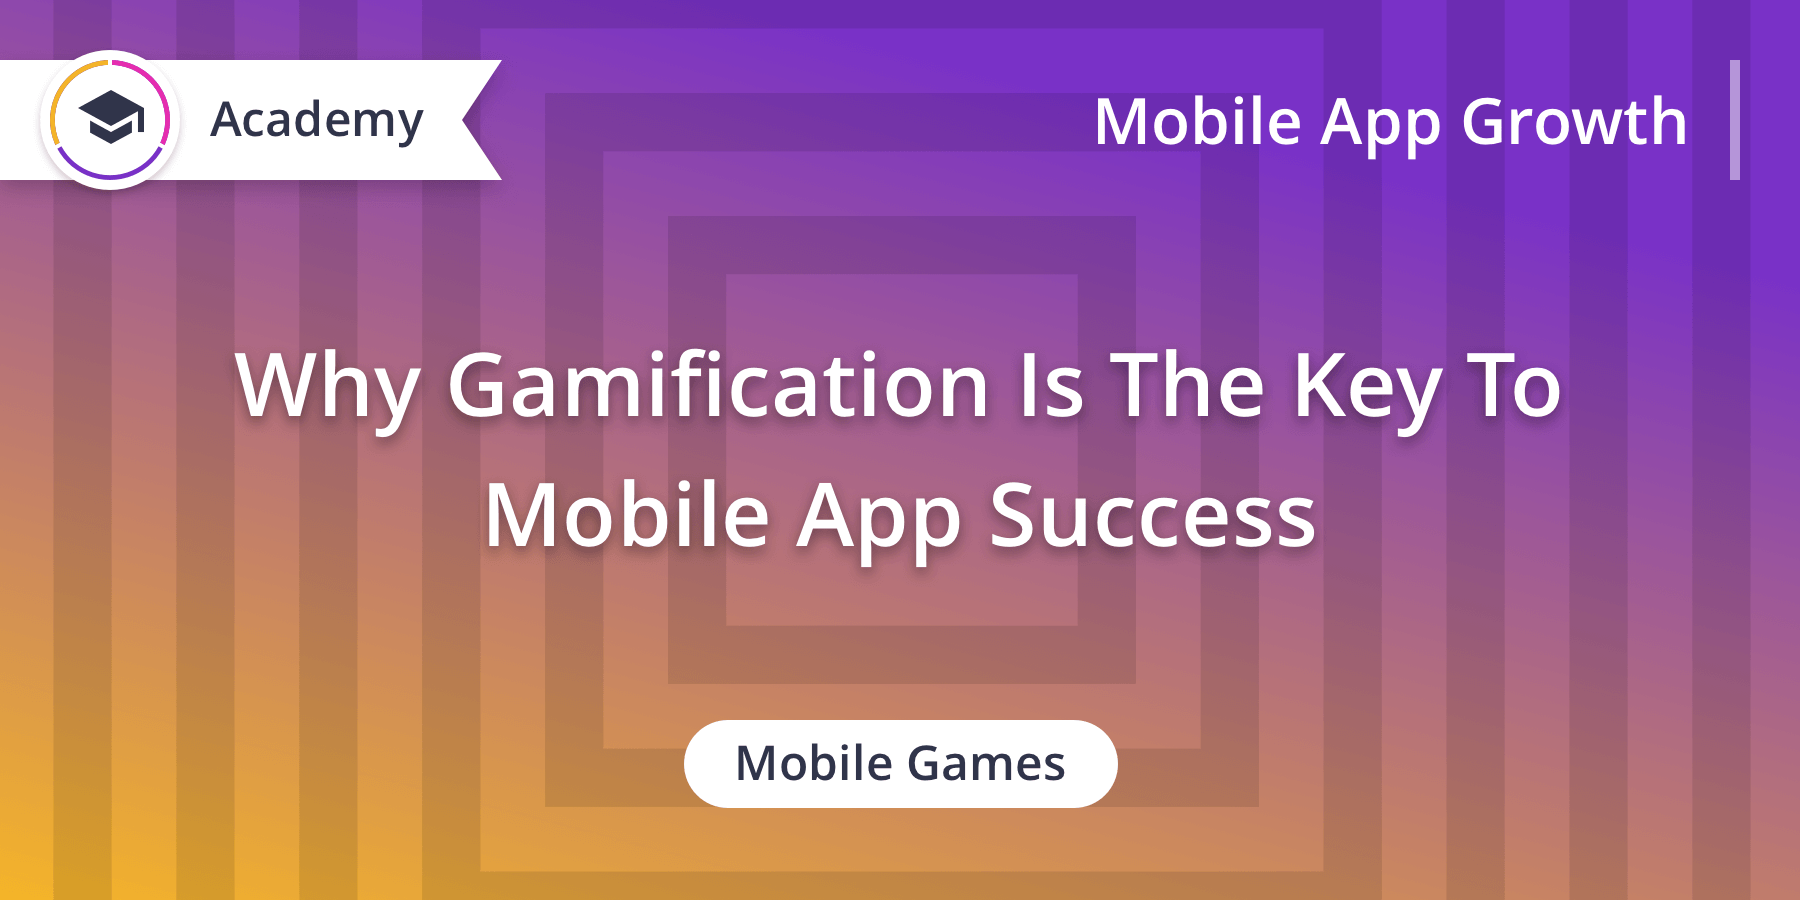 Why Gamified Apps Consistently Outplay The Competition